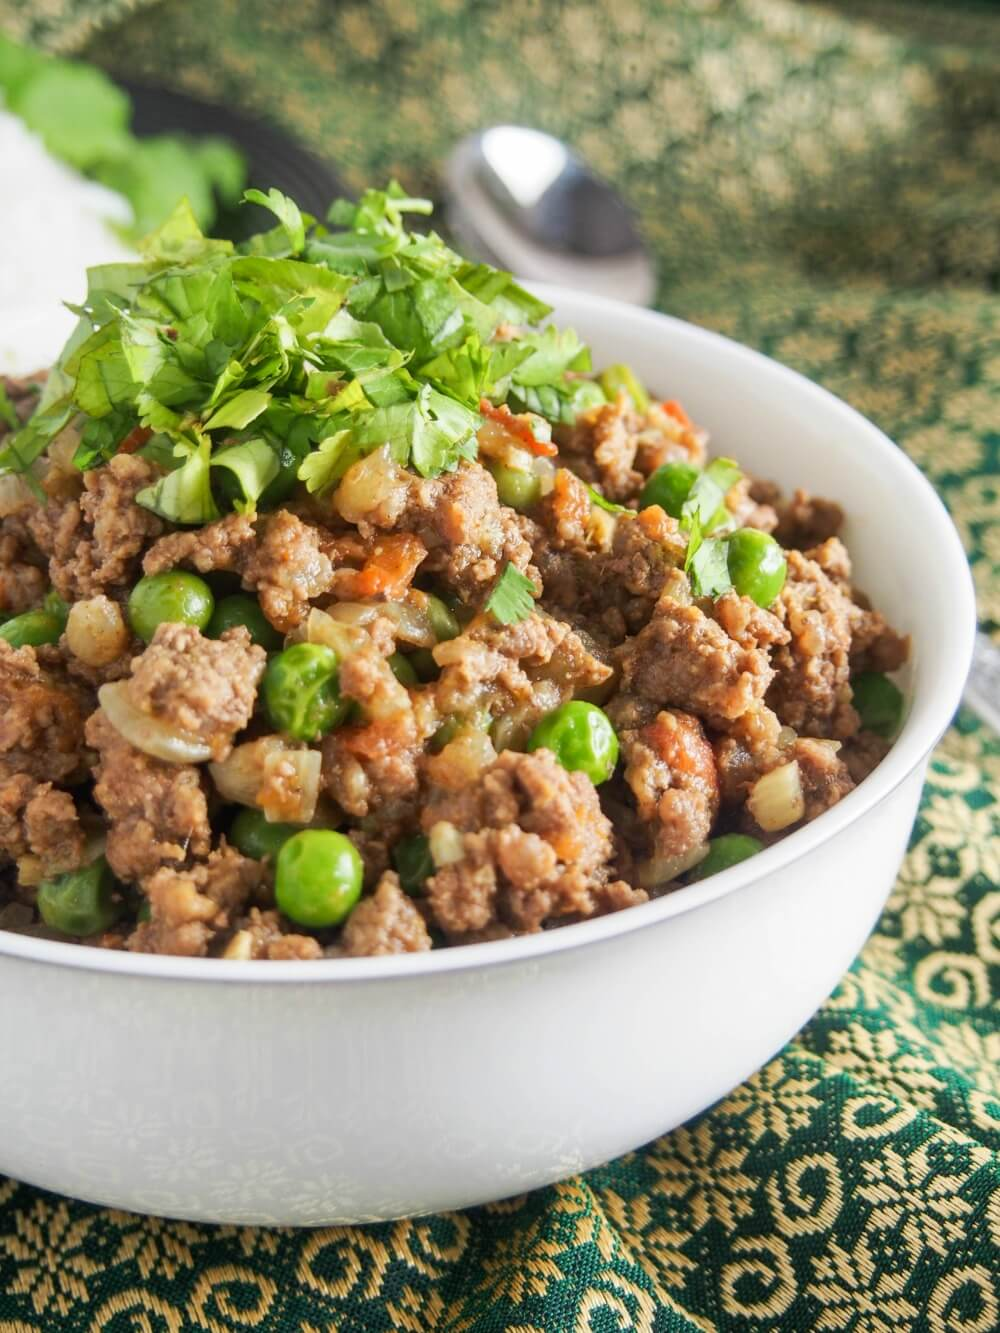 Keema curry (keema matar) is a delicious Indian/Pakistani ground meat and pea curry. Easy to make, and with plenty of flavor, it's a great meal for any night of the week. It's also perfect for meal prep.